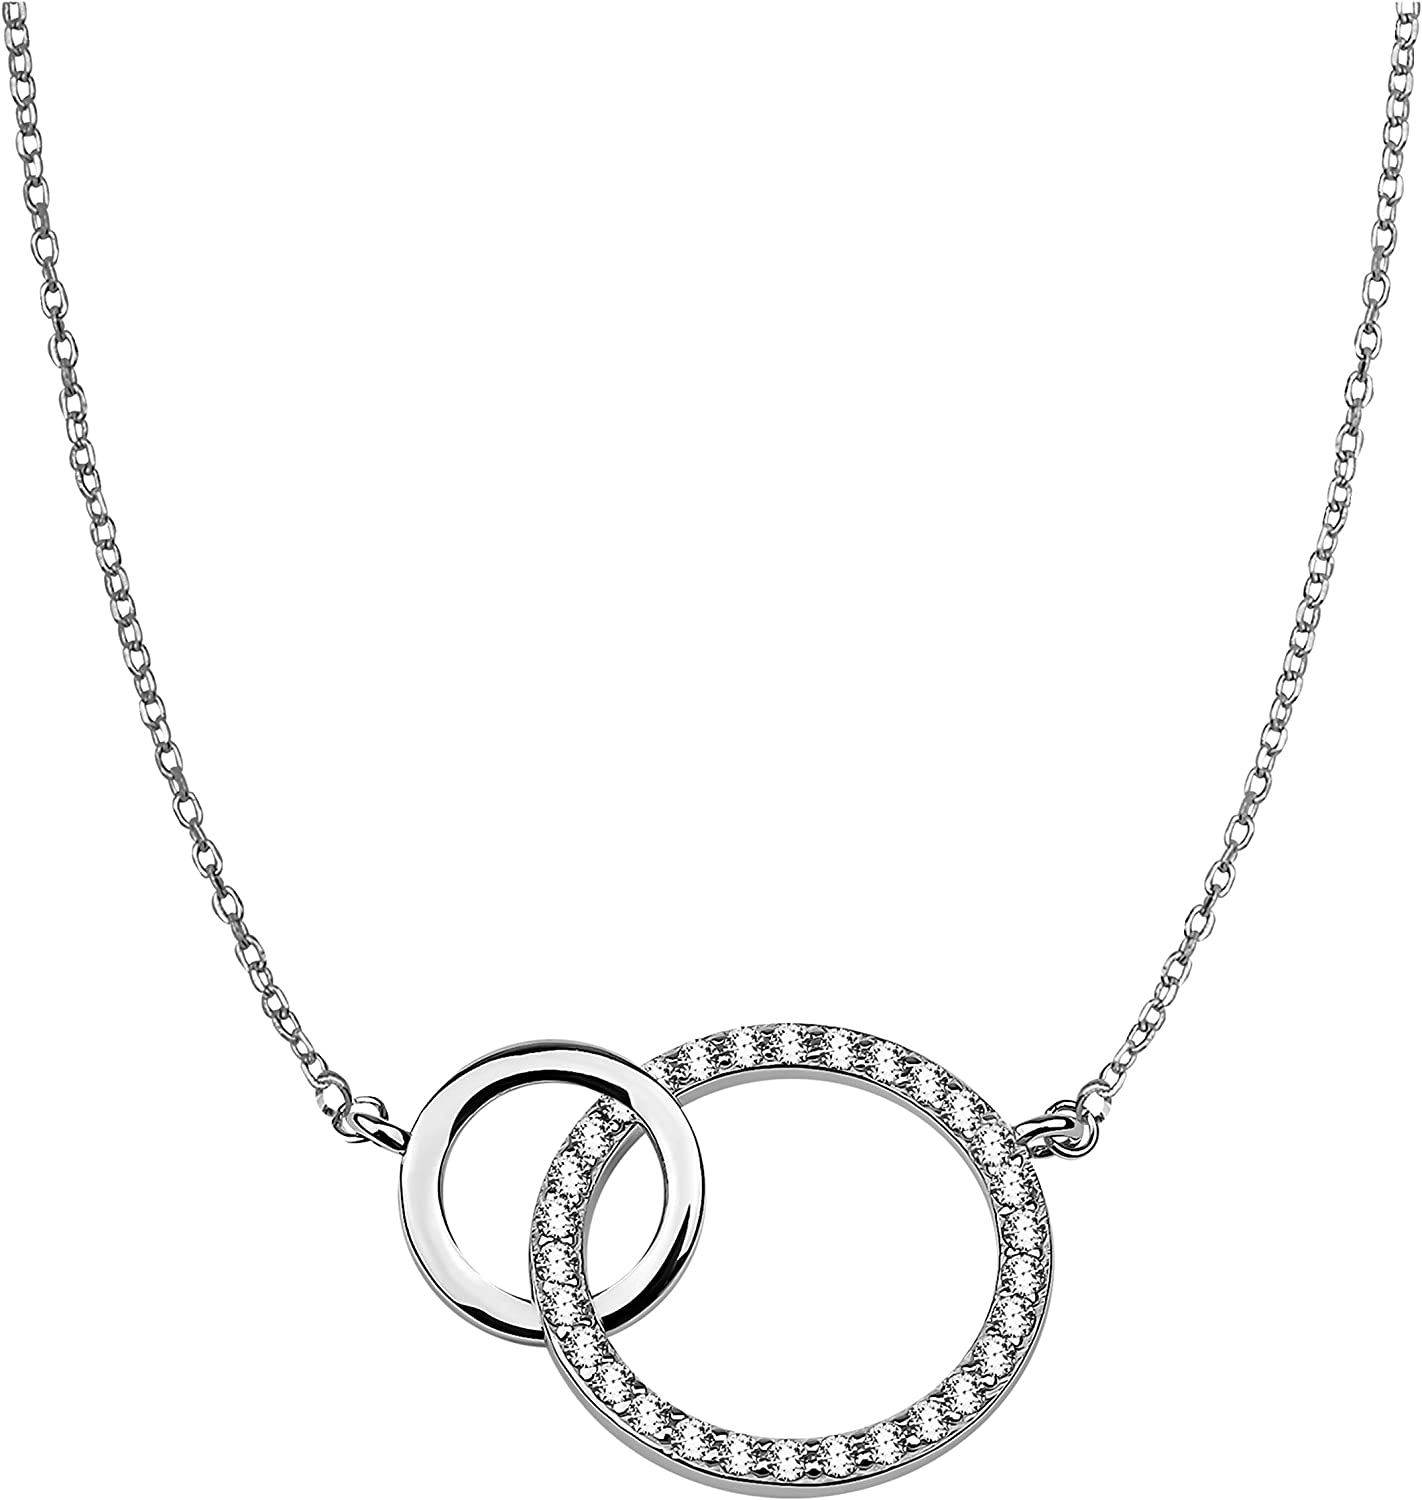 Sofia Milani - Women's Necklace Outlet SALE 925 Silver Wholesale Stone with Zirconia